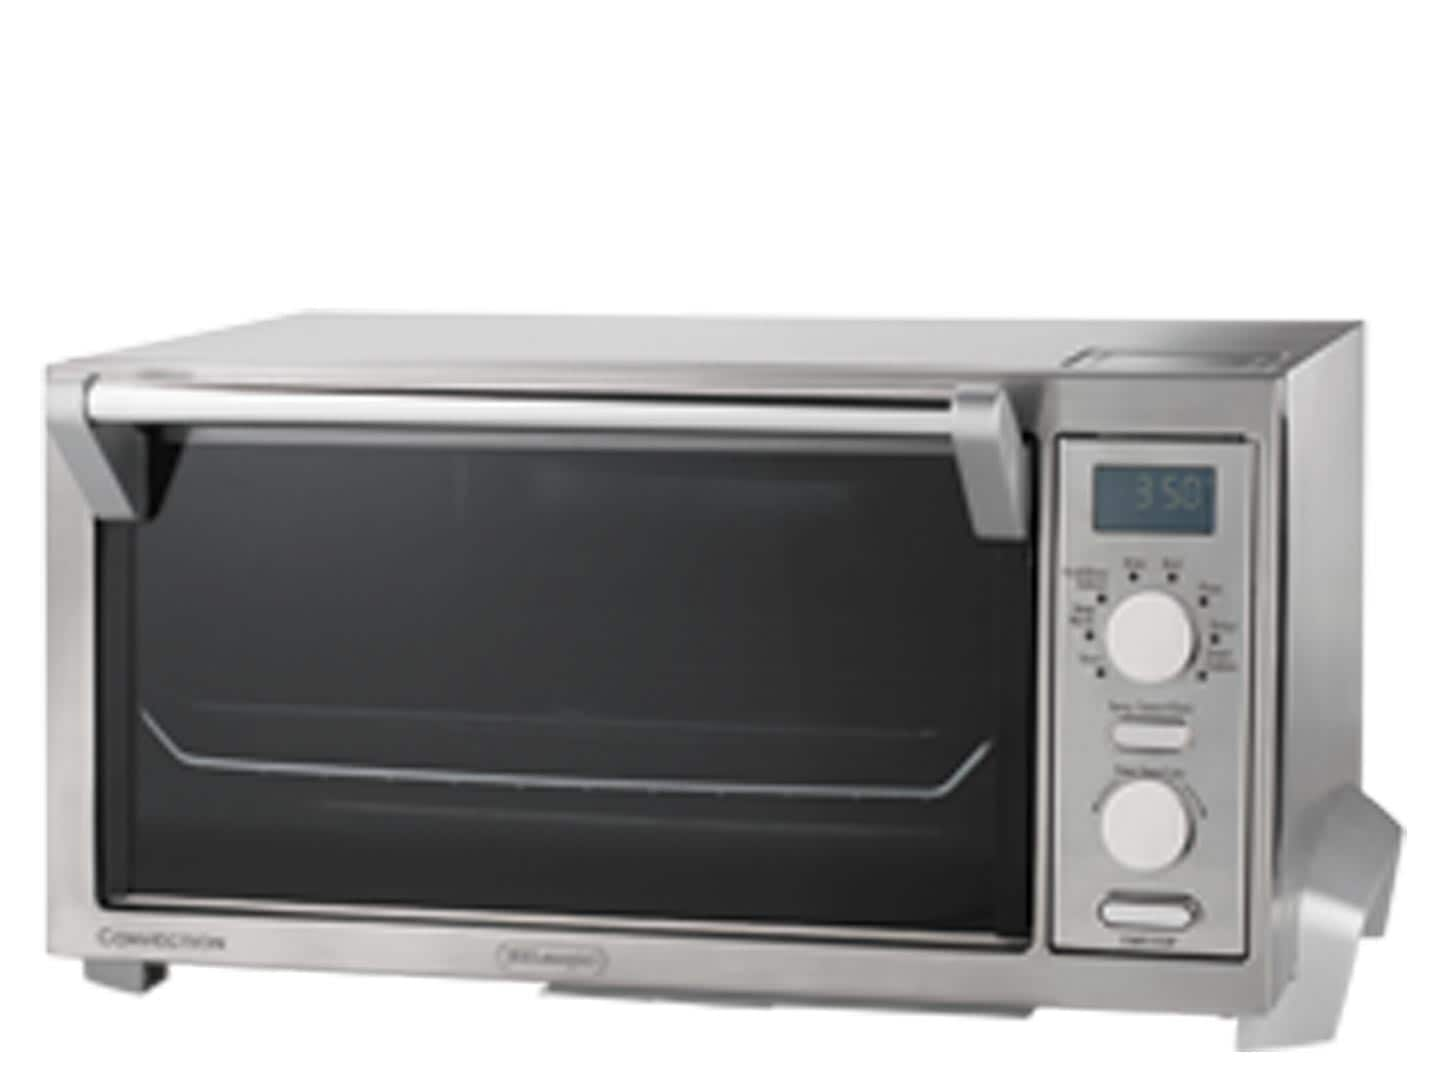 Digital Convection Oven DO1289